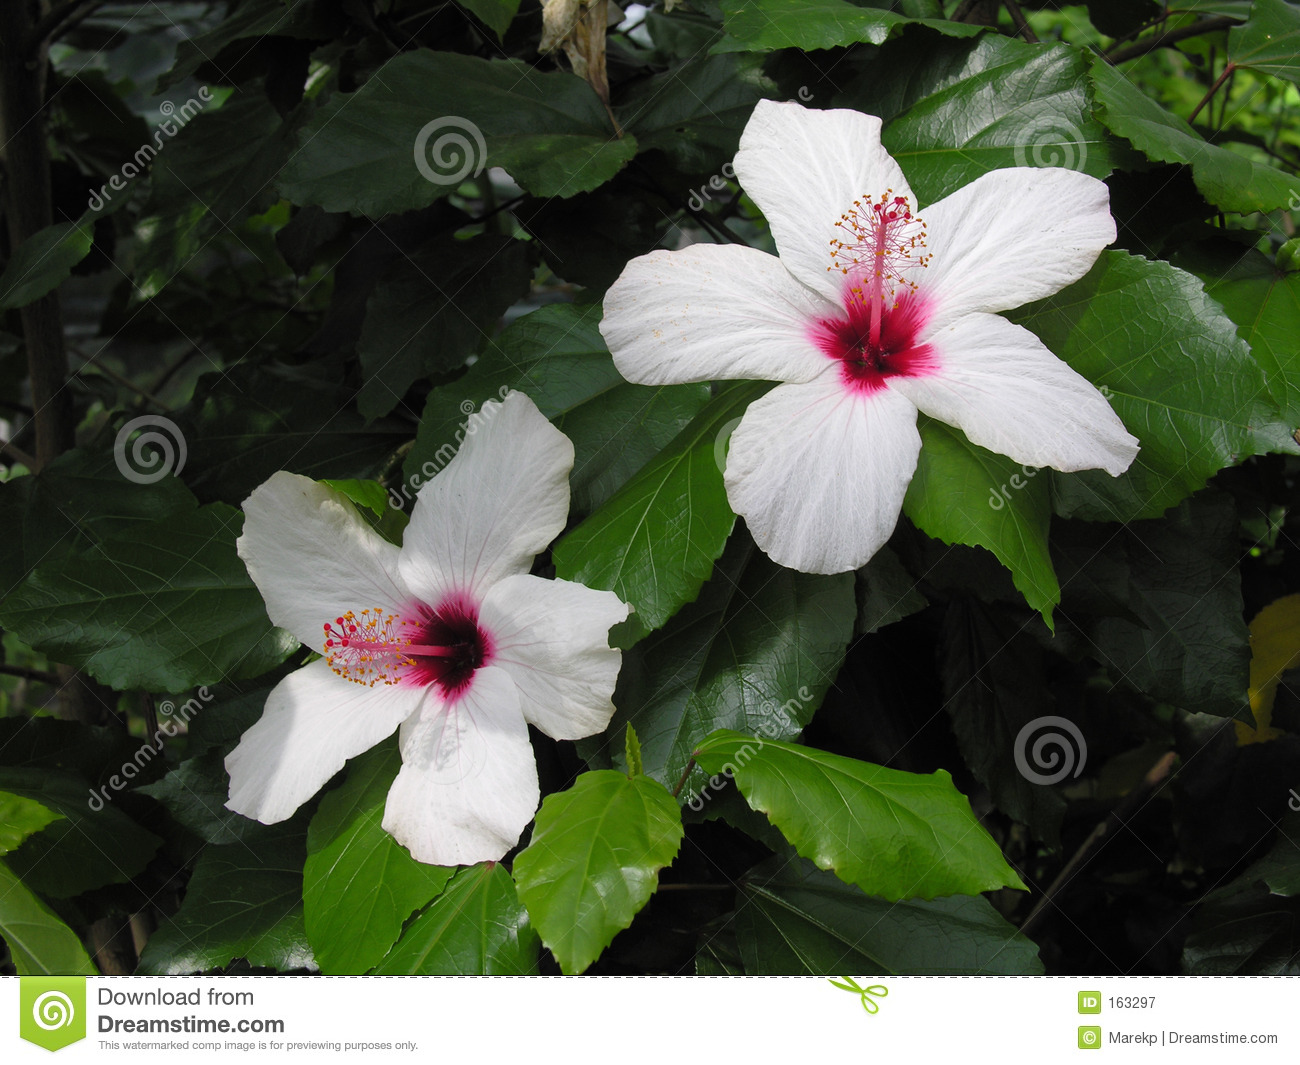 White and pink hibiscus flower stock image image of holidays white and pink hibiscus flower mightylinksfo Choice Image